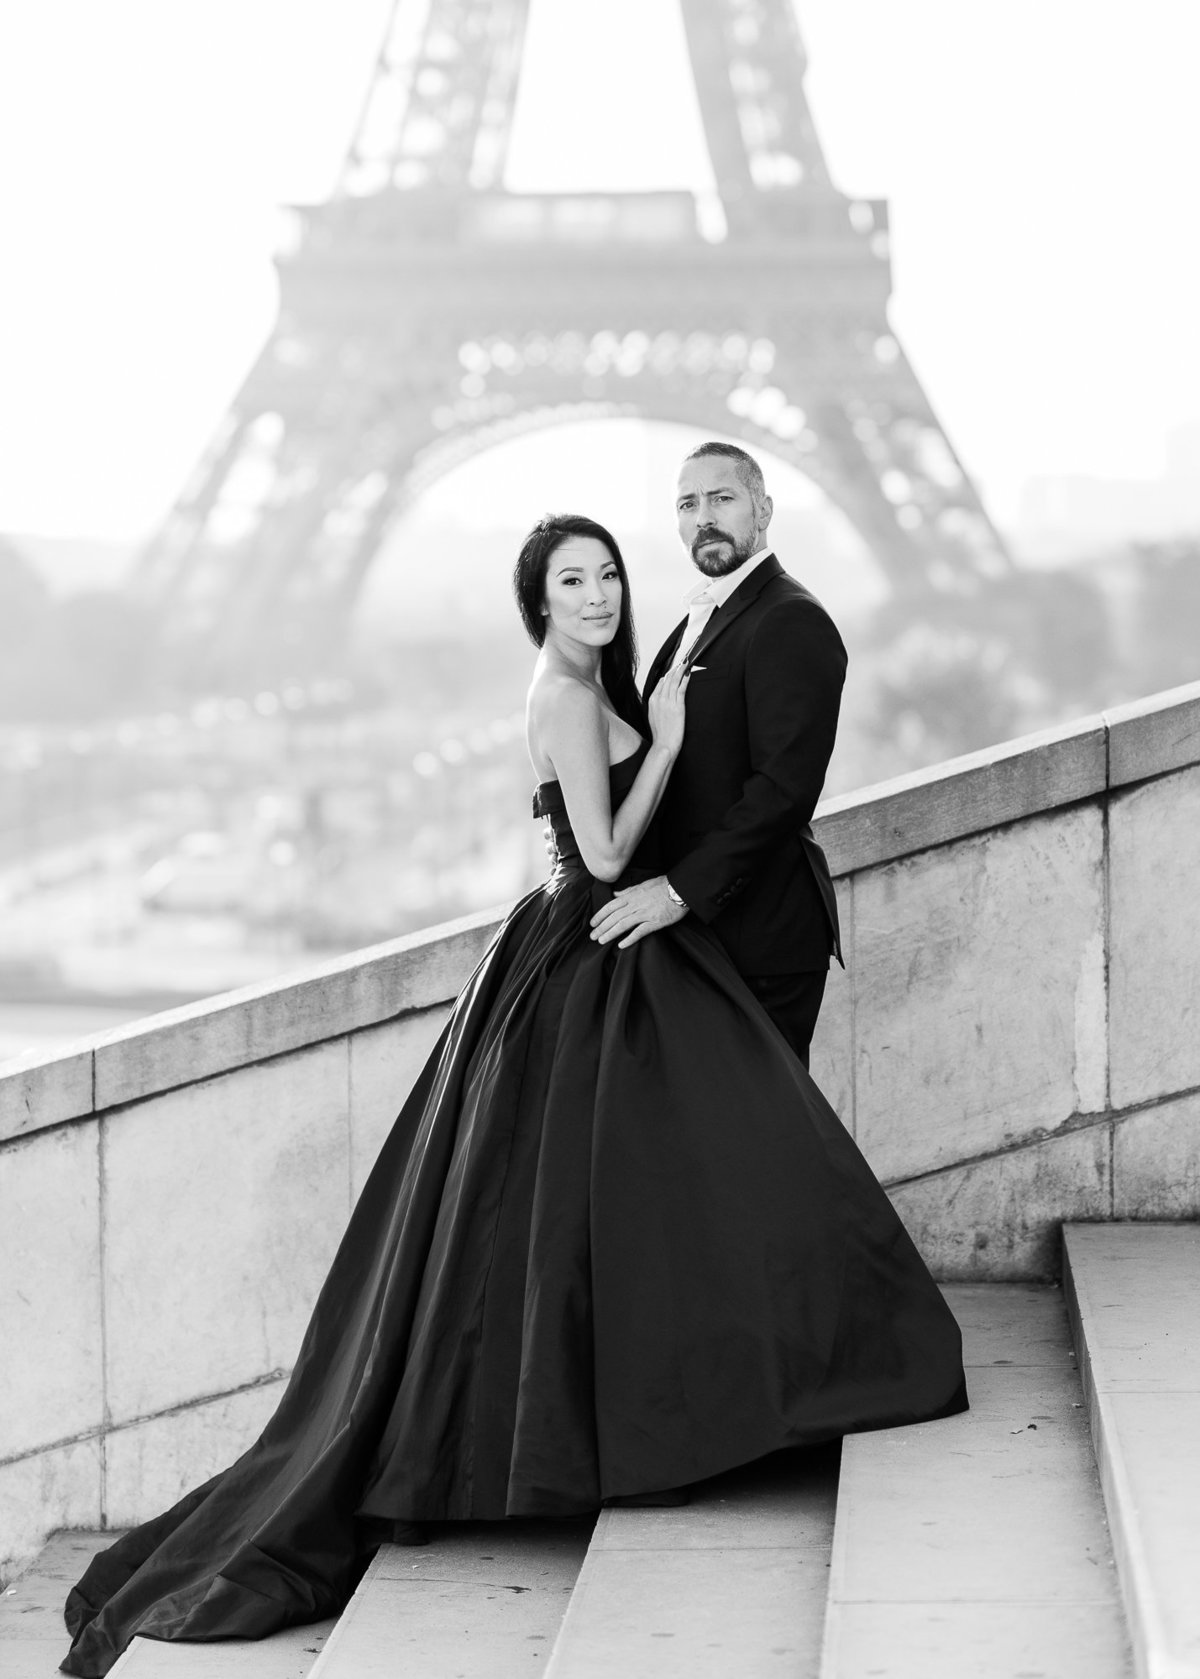 Paris_Wedding_Photographer_164